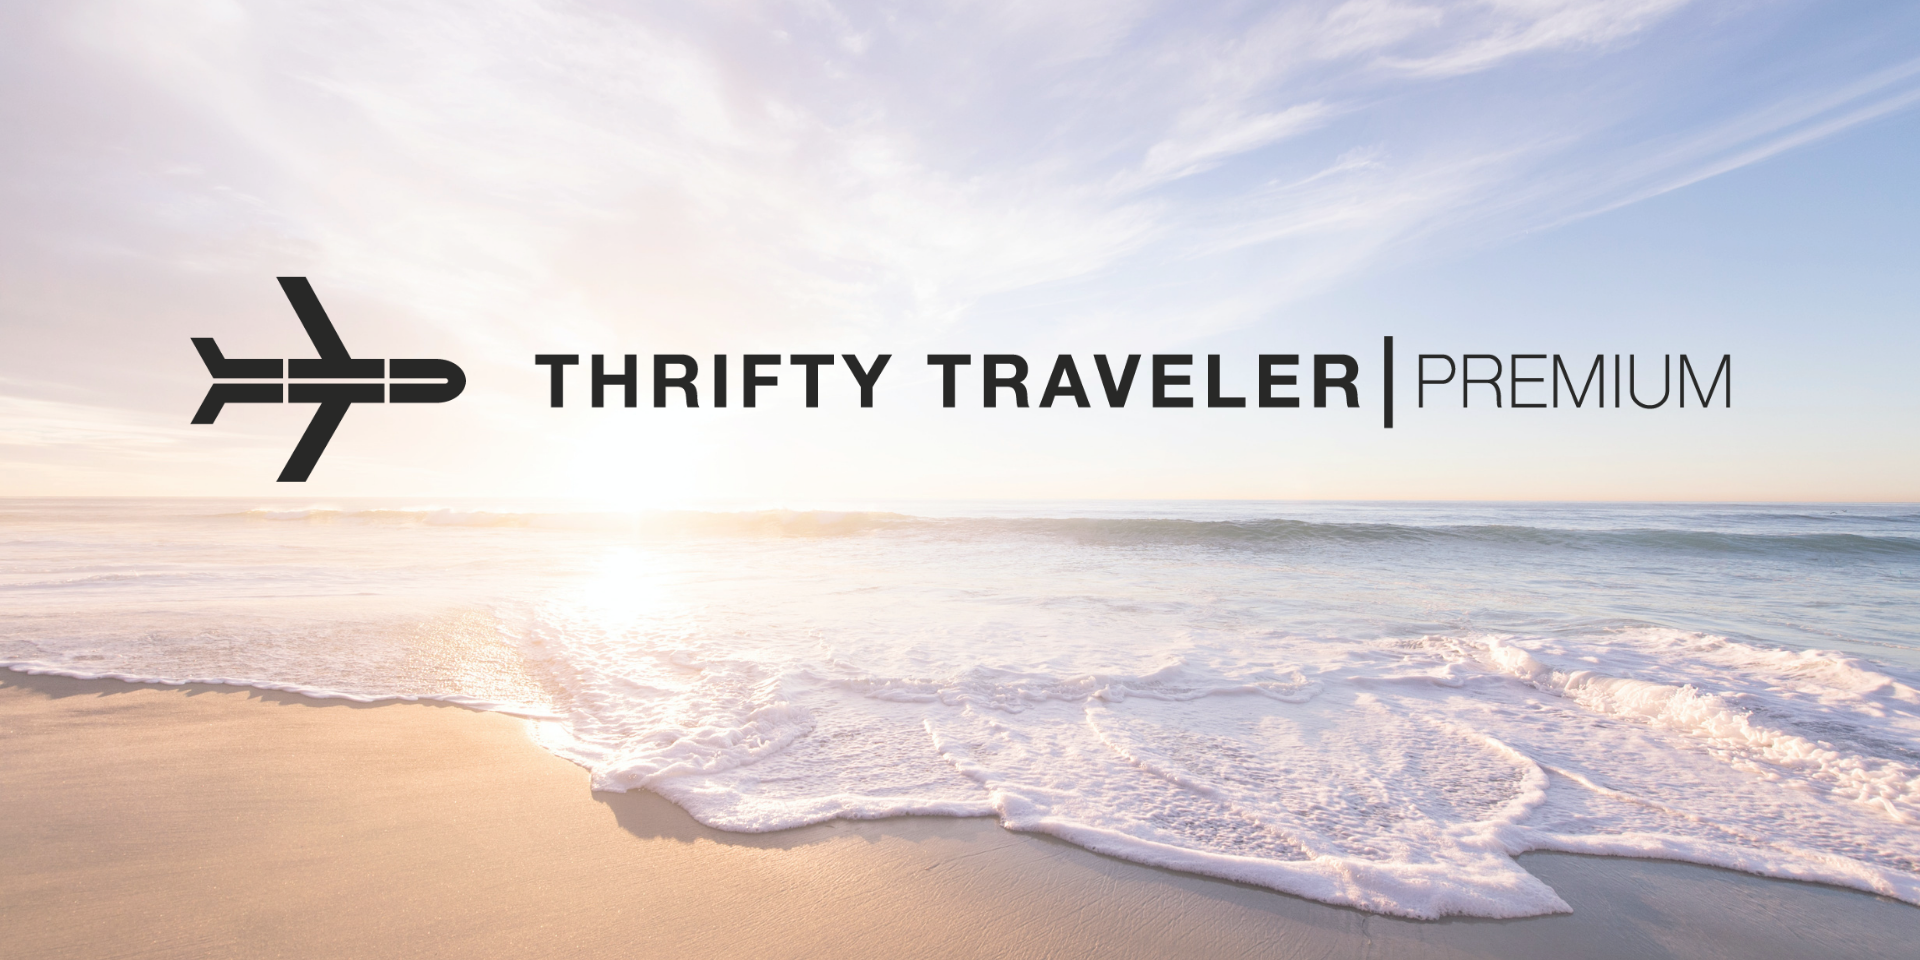 EXTENDED: Get Thrifty Traveler Premium Flight Deals Before Prices Increase!